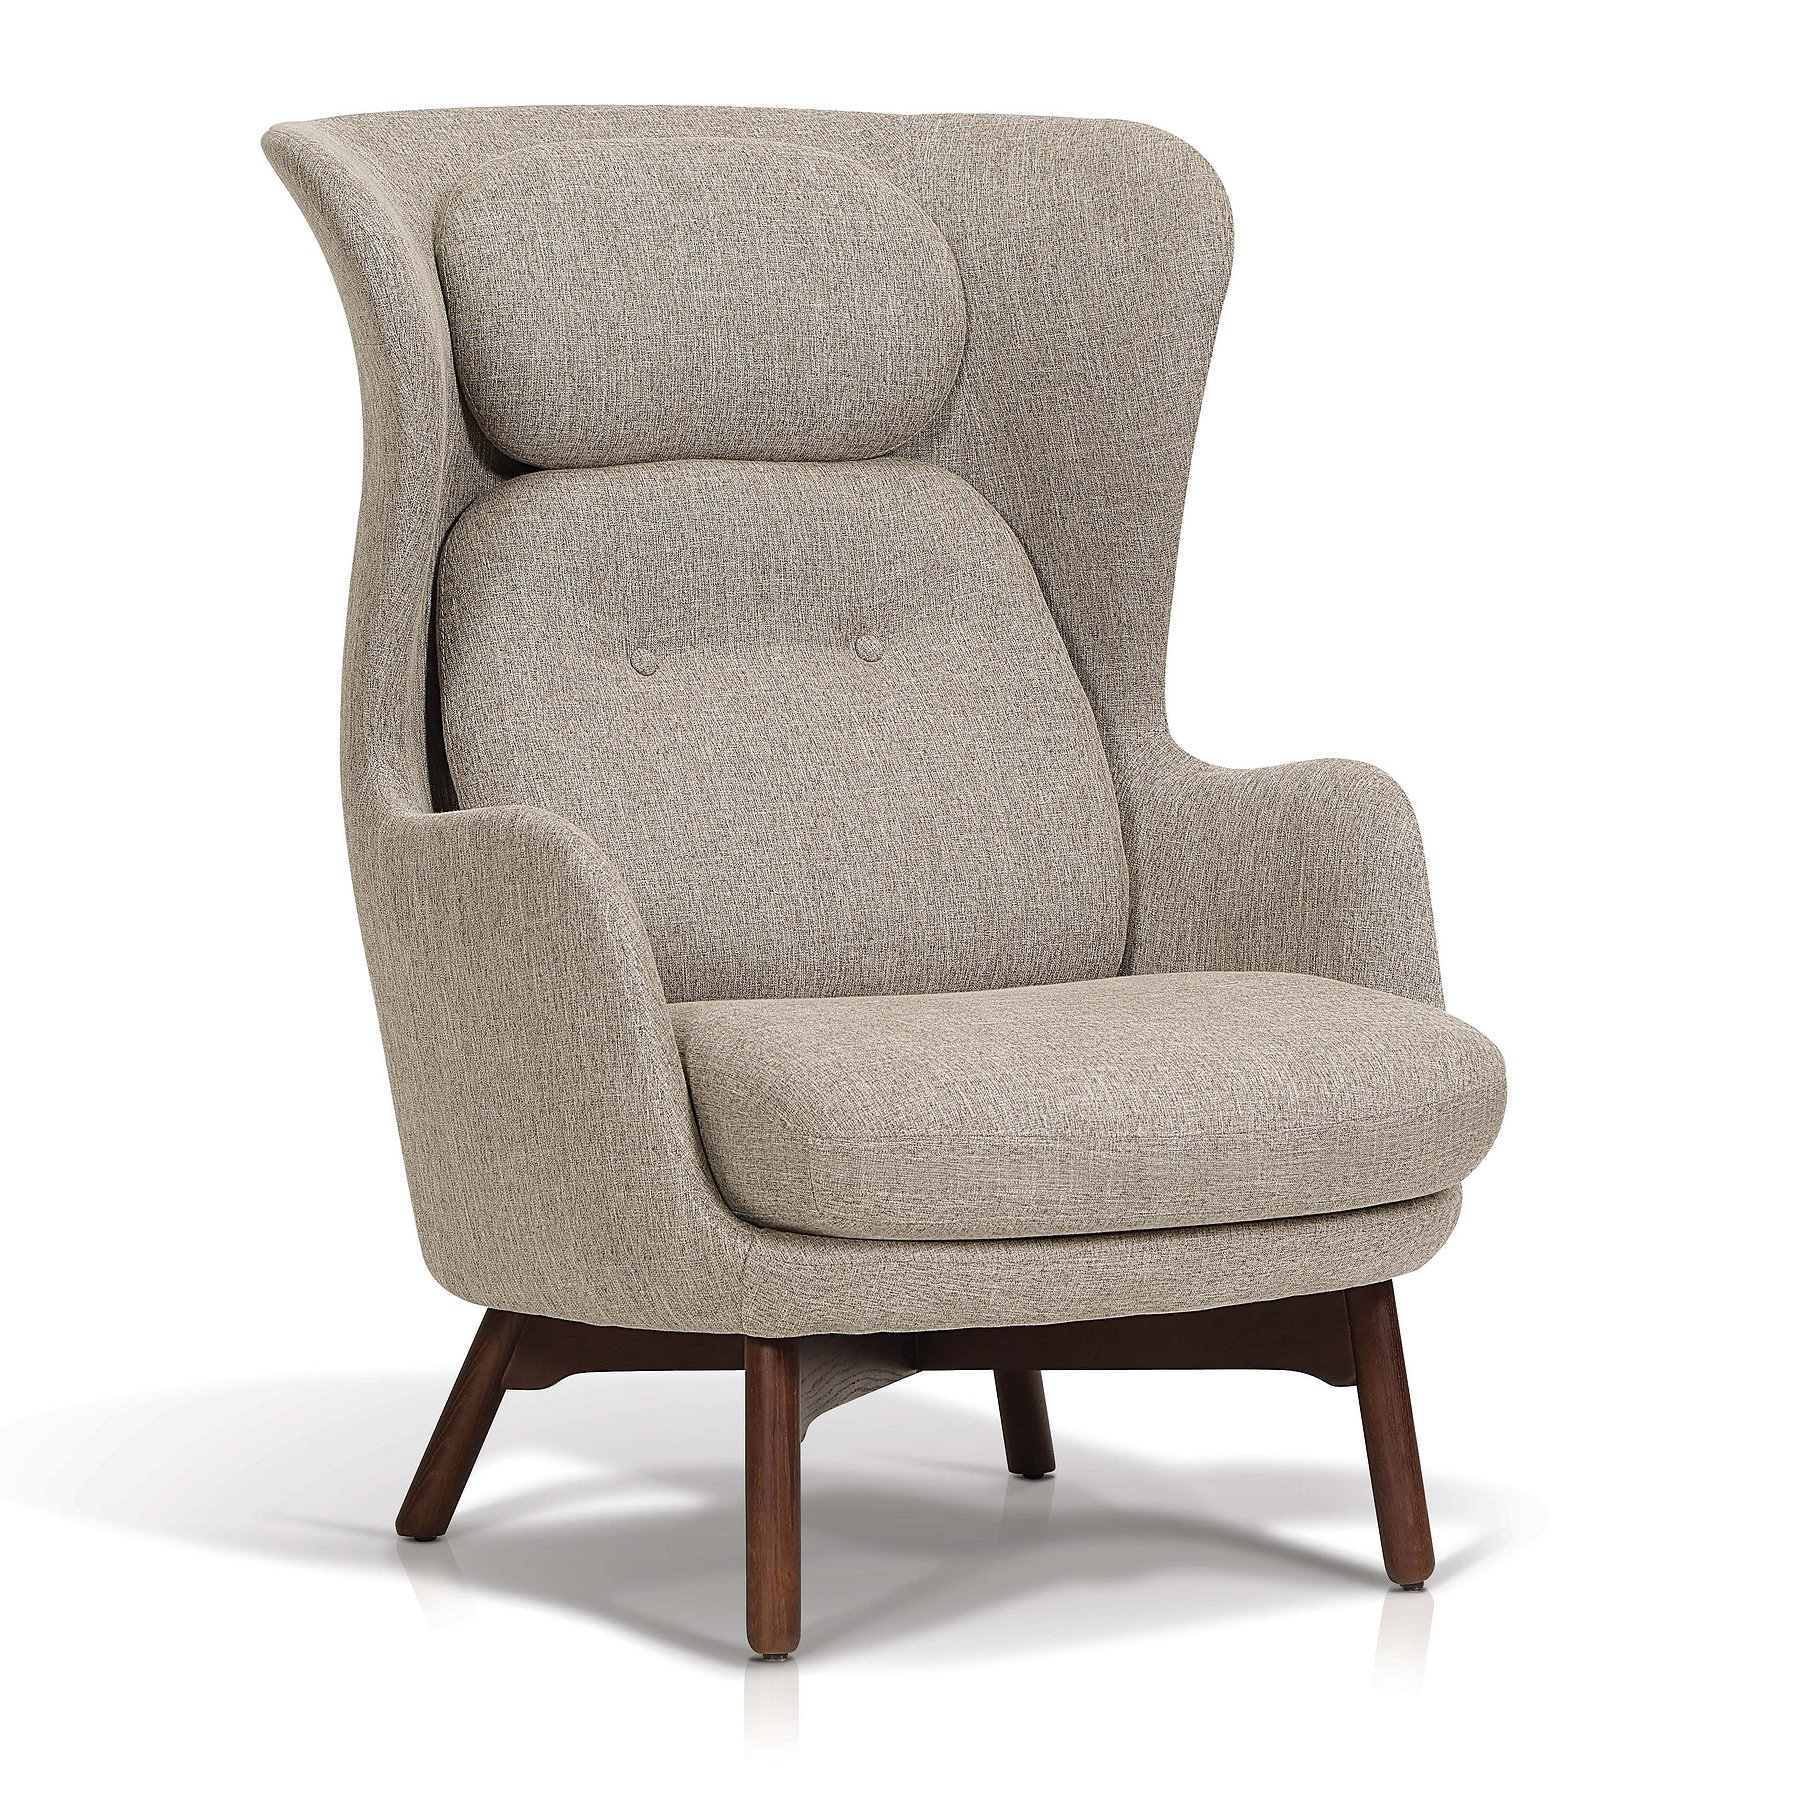 new products chairs woven leather of pair occasional chair dekor format